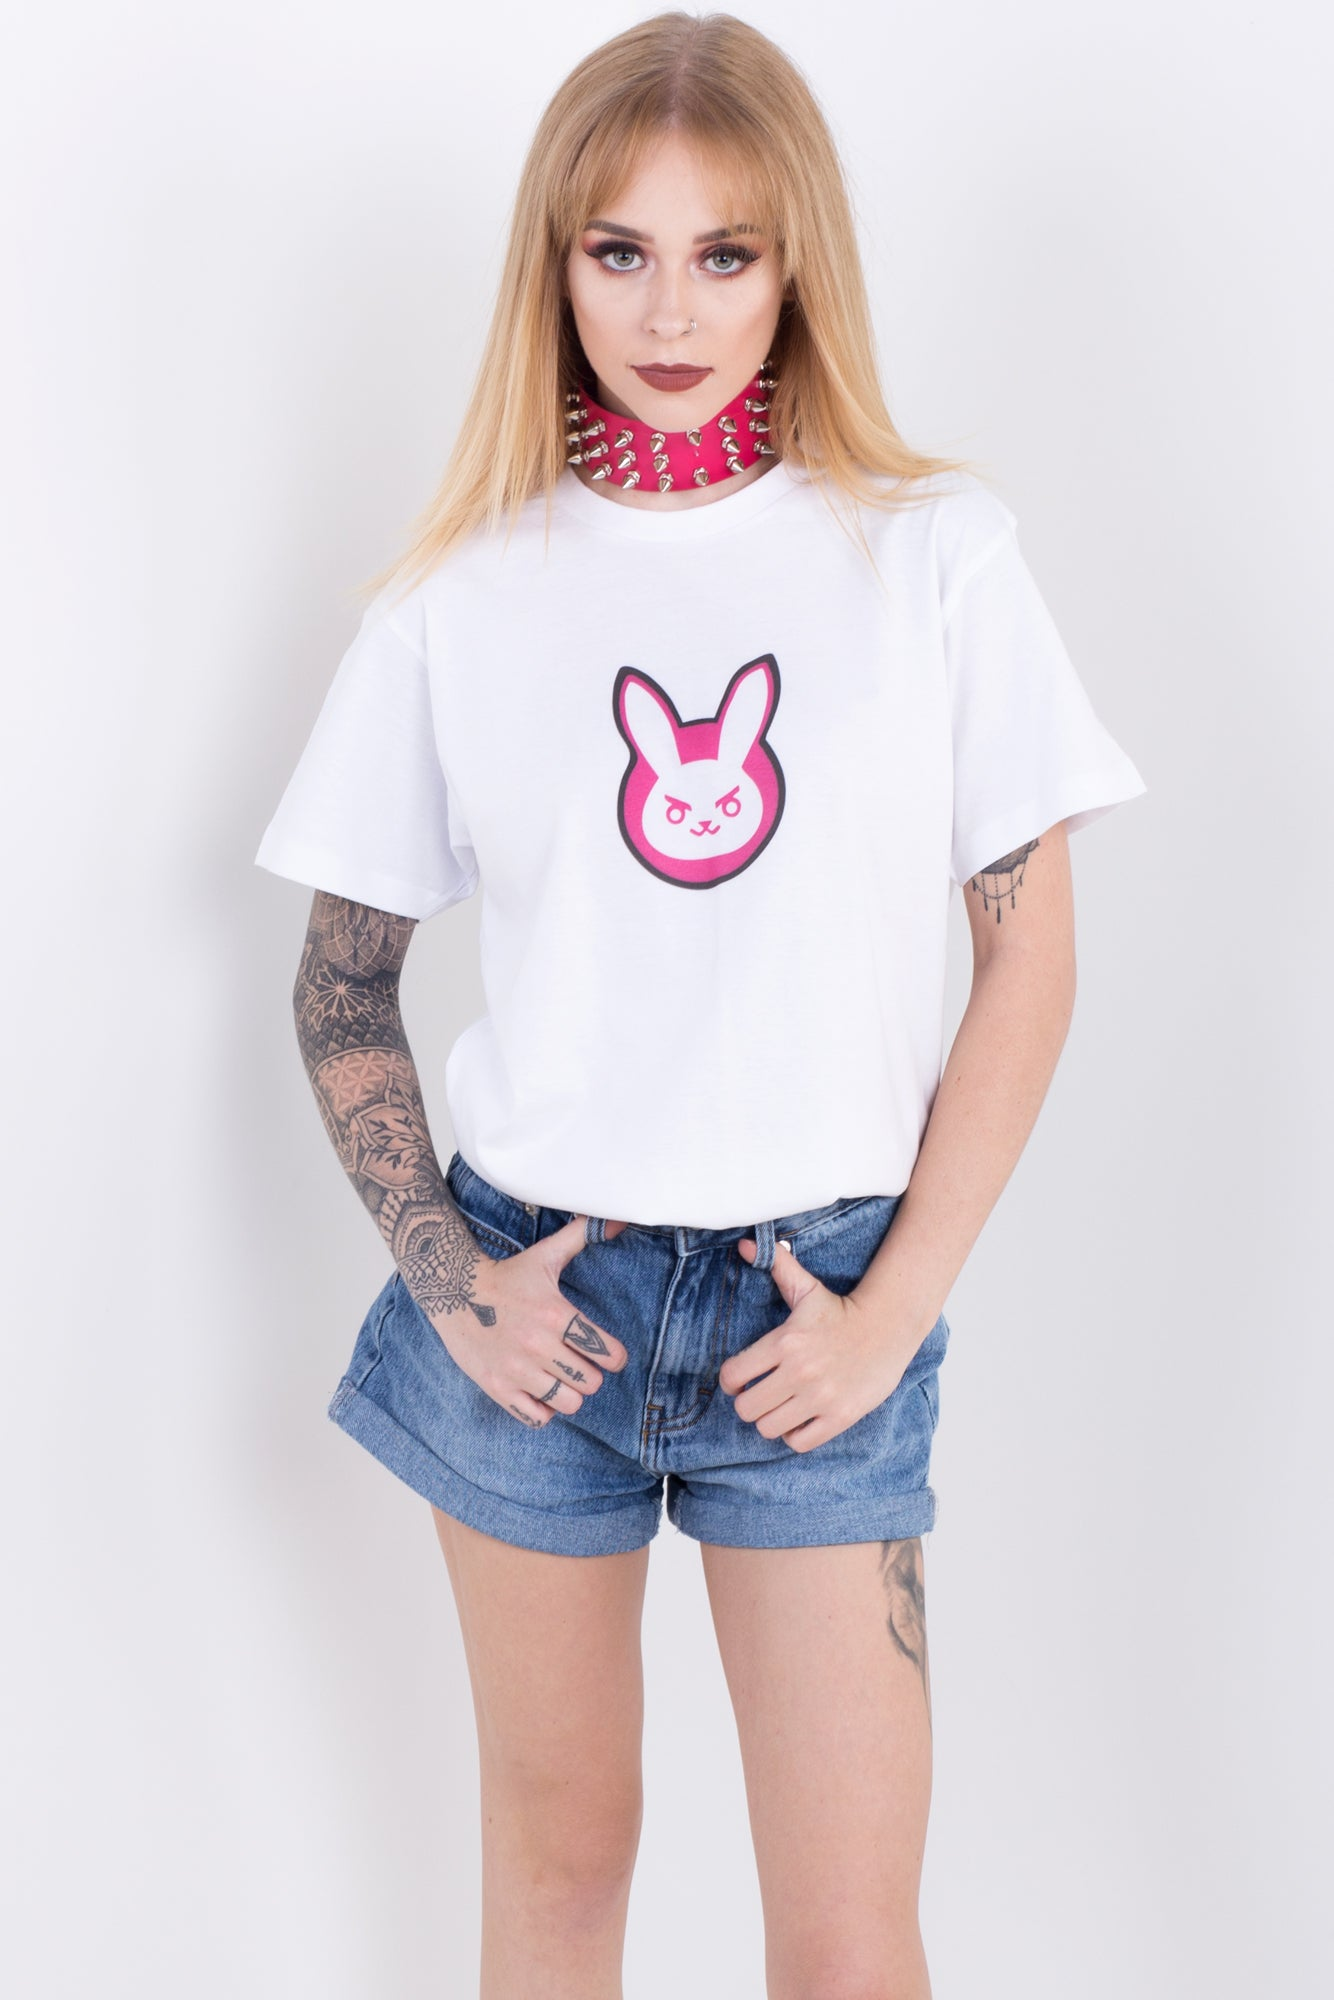 Nerf This Tee